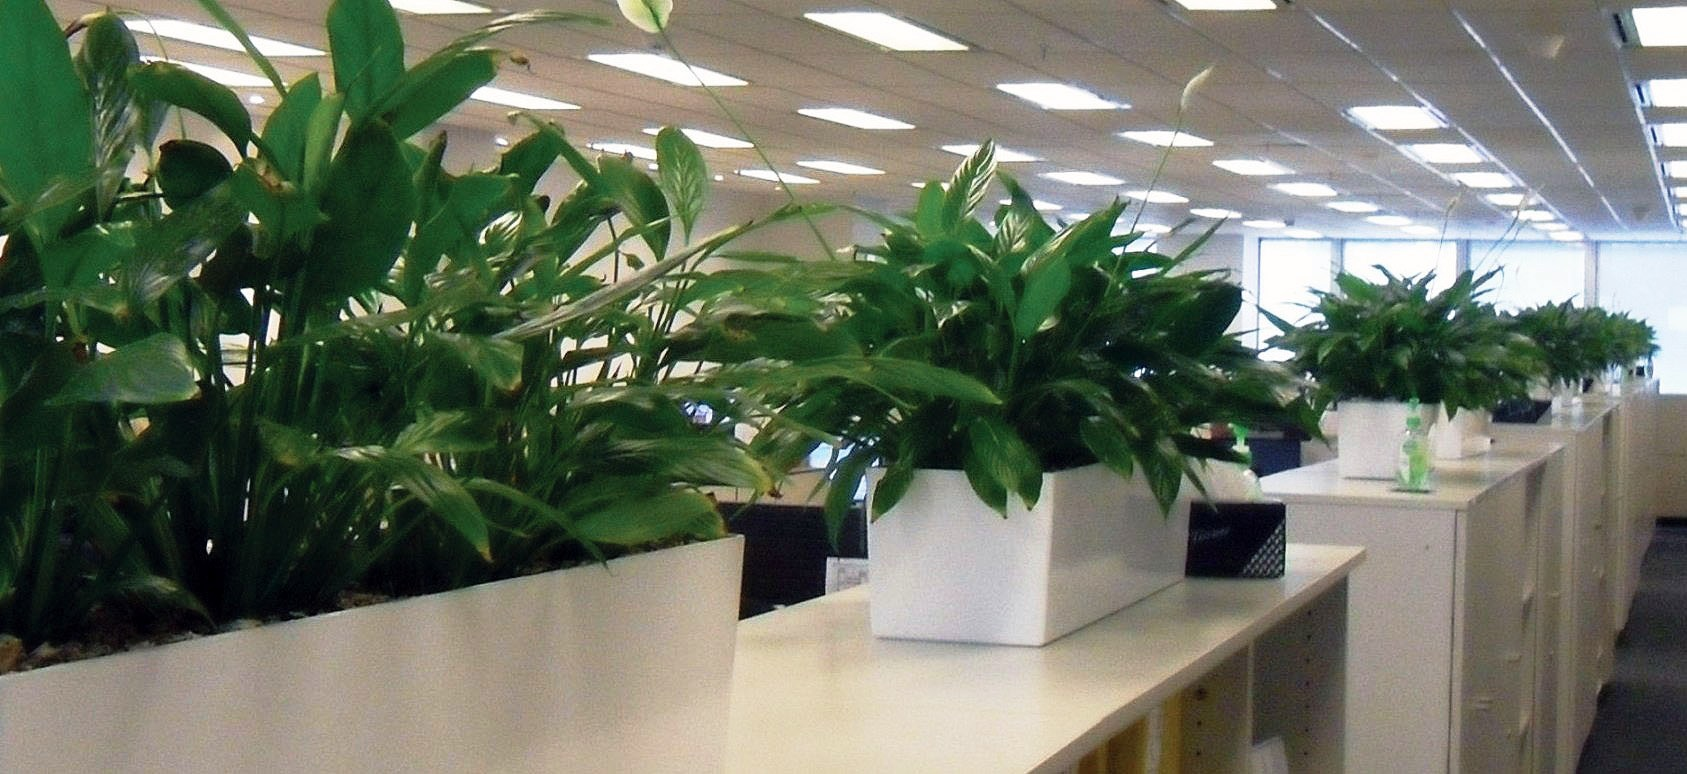 Spathiphyllum in partition trough gaddys plant hire - Cubicle planters ...